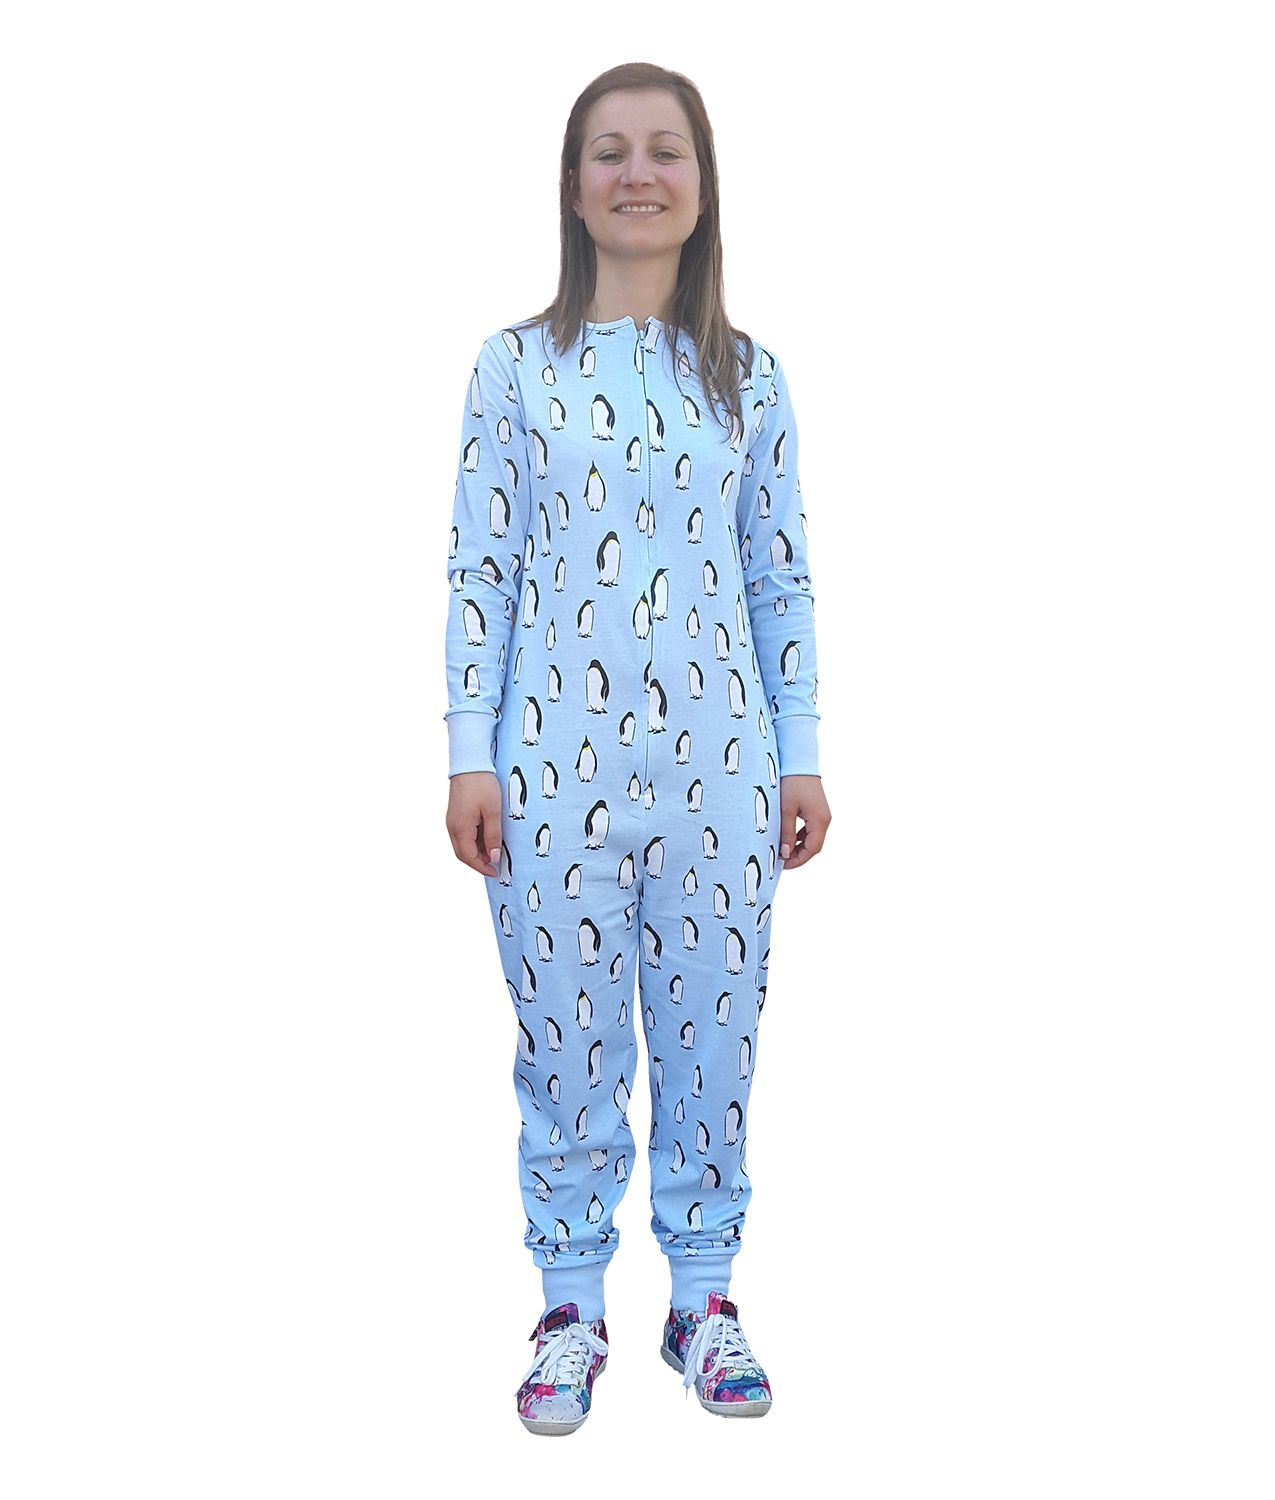 """I'm pretty sure there's a lot more to life than being really, really, ridiculously good looking."" - Zoolander  Our new Zooland Adult Onesie is a tribute to the film Zoolander. Its made from cool blue cotton with a penguin print so you can strut and pout in style!"